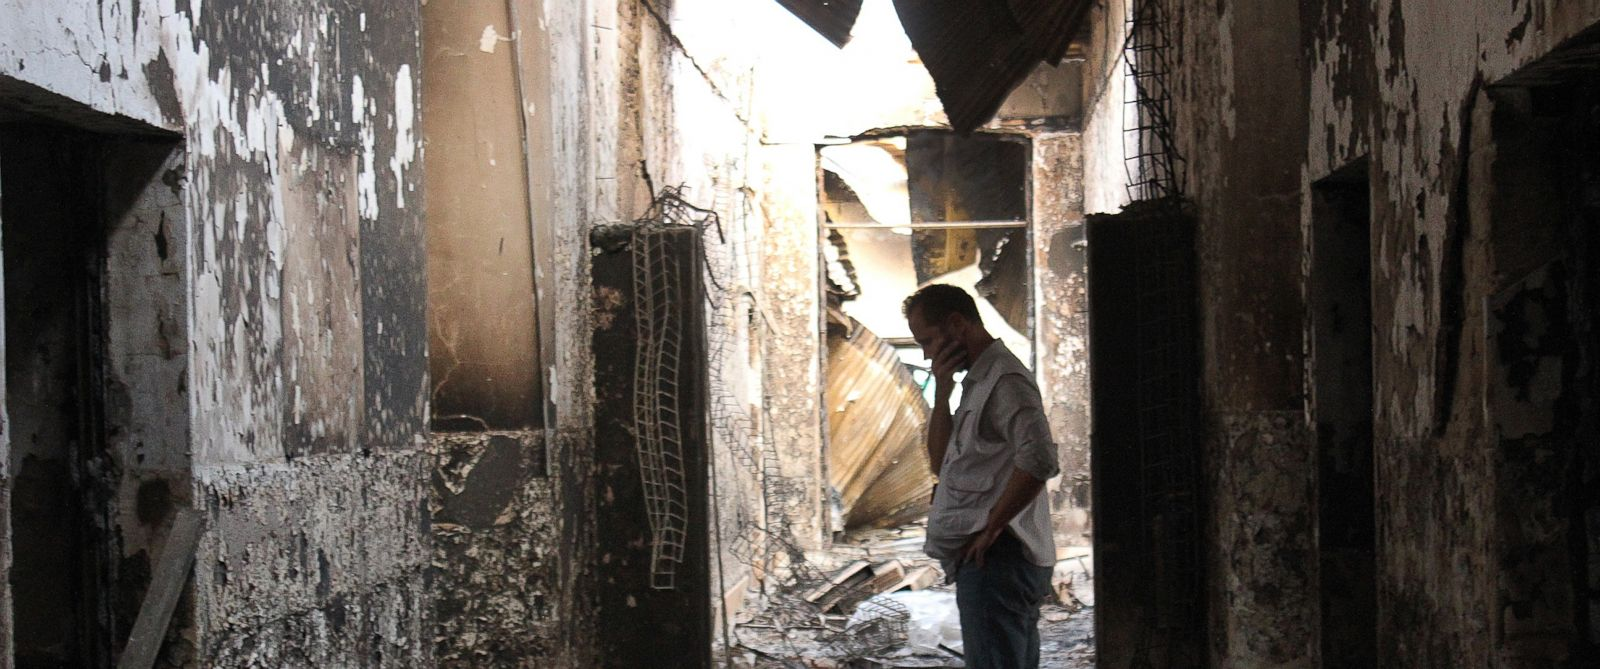 PHOTO:In this, Oct. 16, 2015, file photo, an employee of Doctors Without Borders walks inside the charred remains of their hospital after it was hit by a U.S. airstrike in Kunduz, Afghanistan.